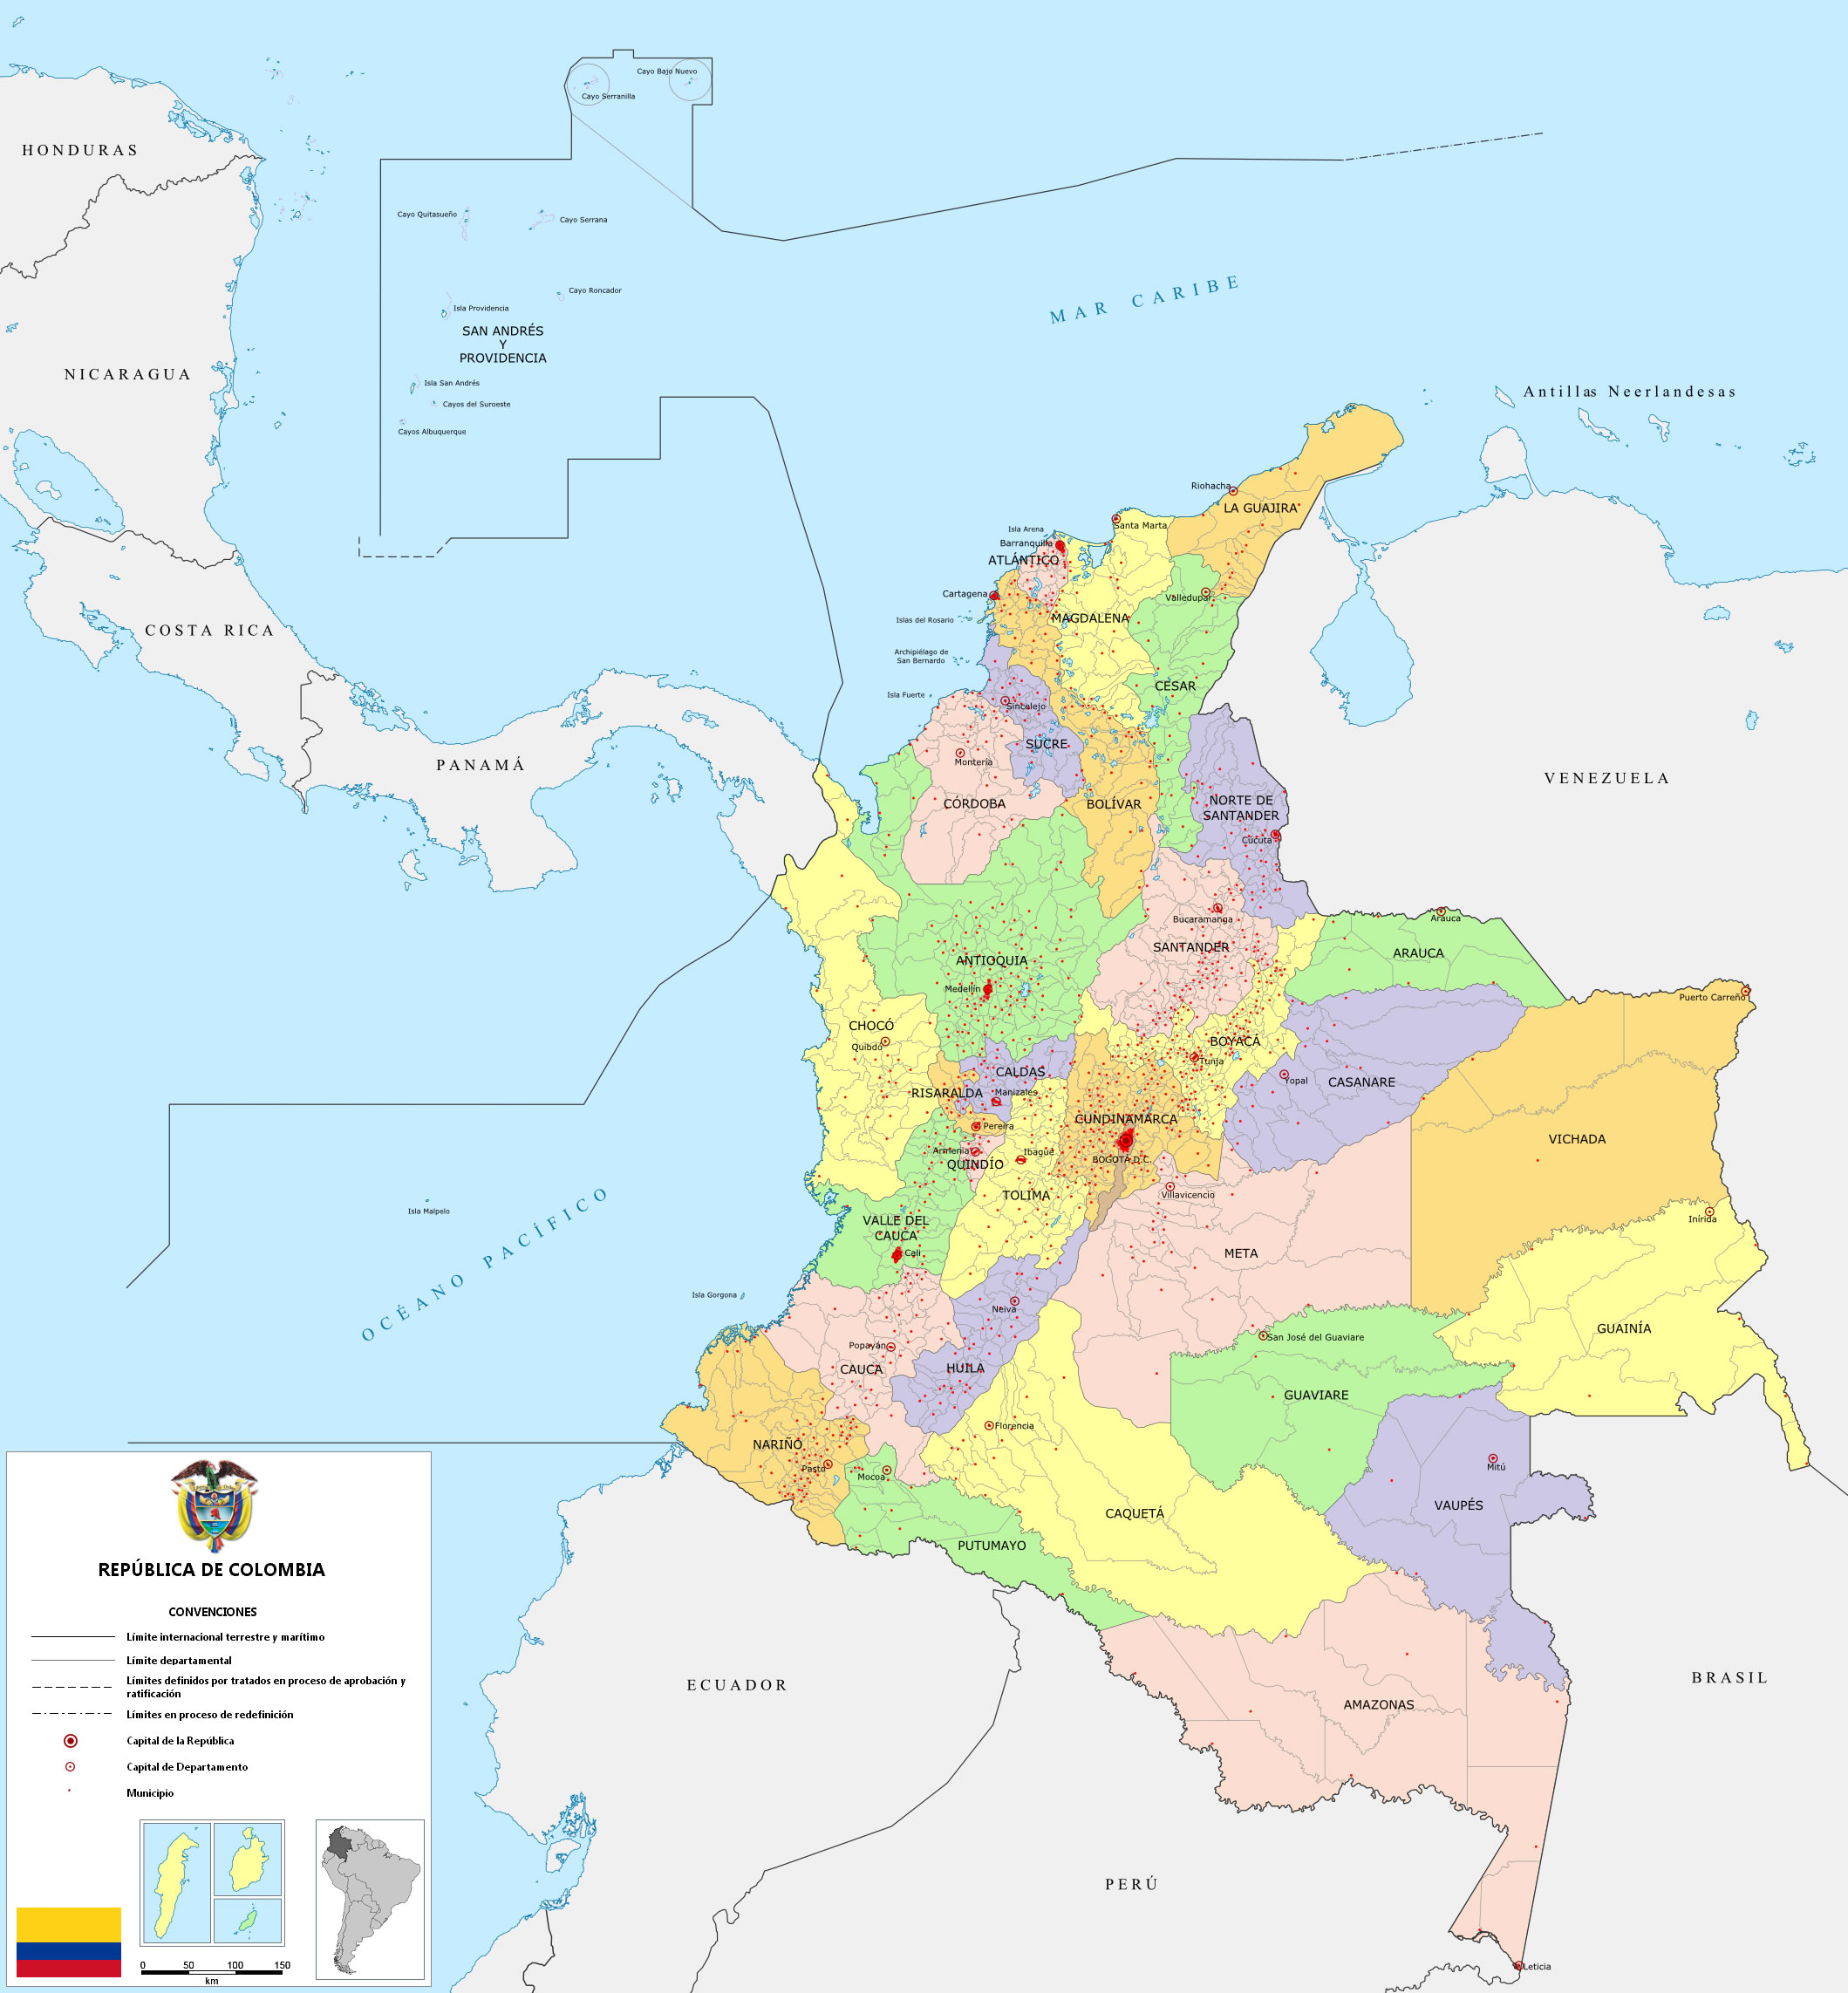 Political-map-of-Colombia-2009.jpg MAPA DE COLOMBIA